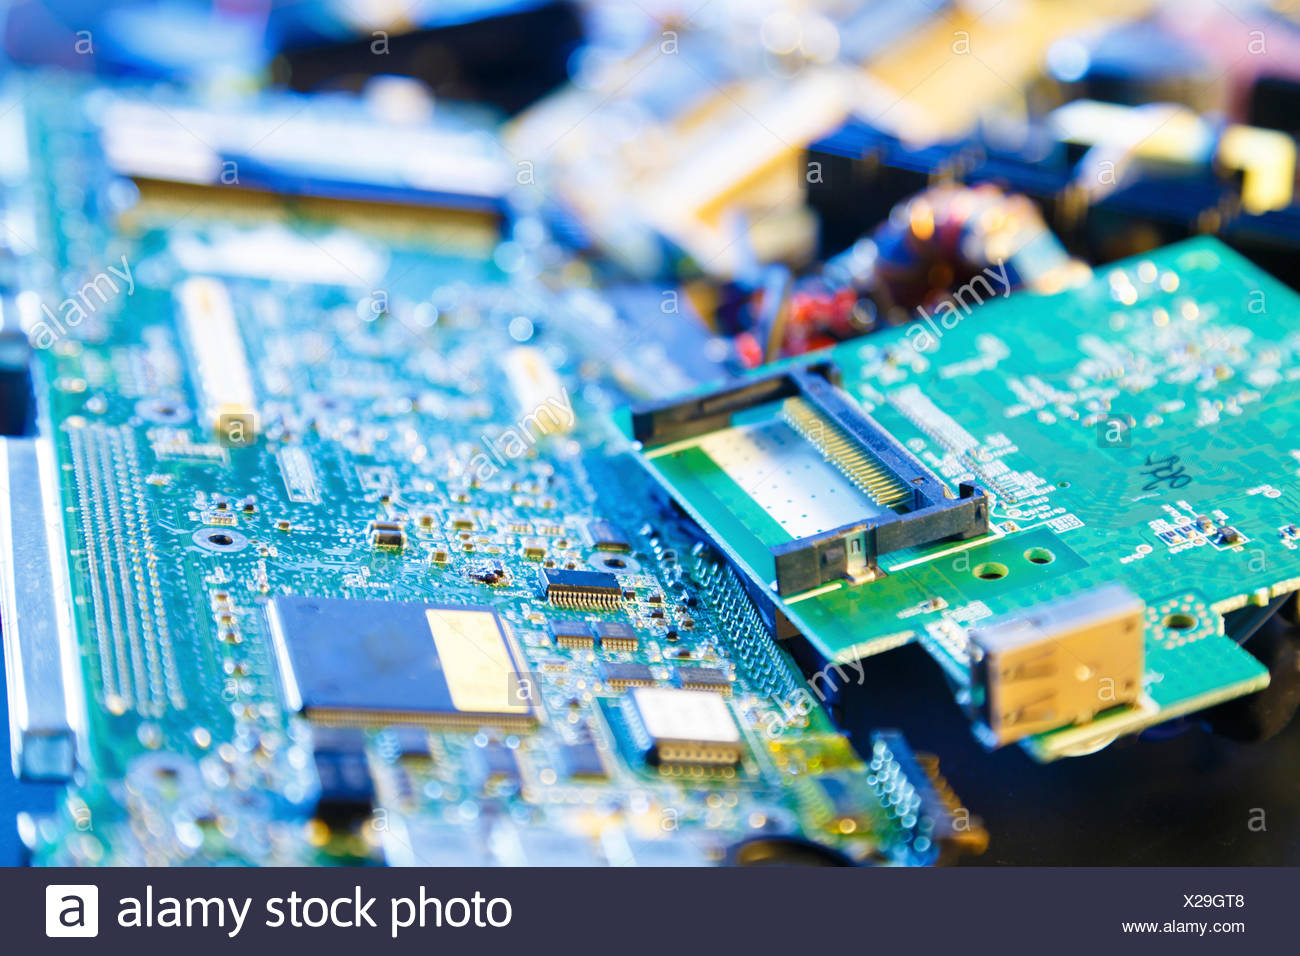 Circuit Boards Stock Photos Images Alamy Pcb Recycling Machine Gt Waste Printed Board Recycled Image